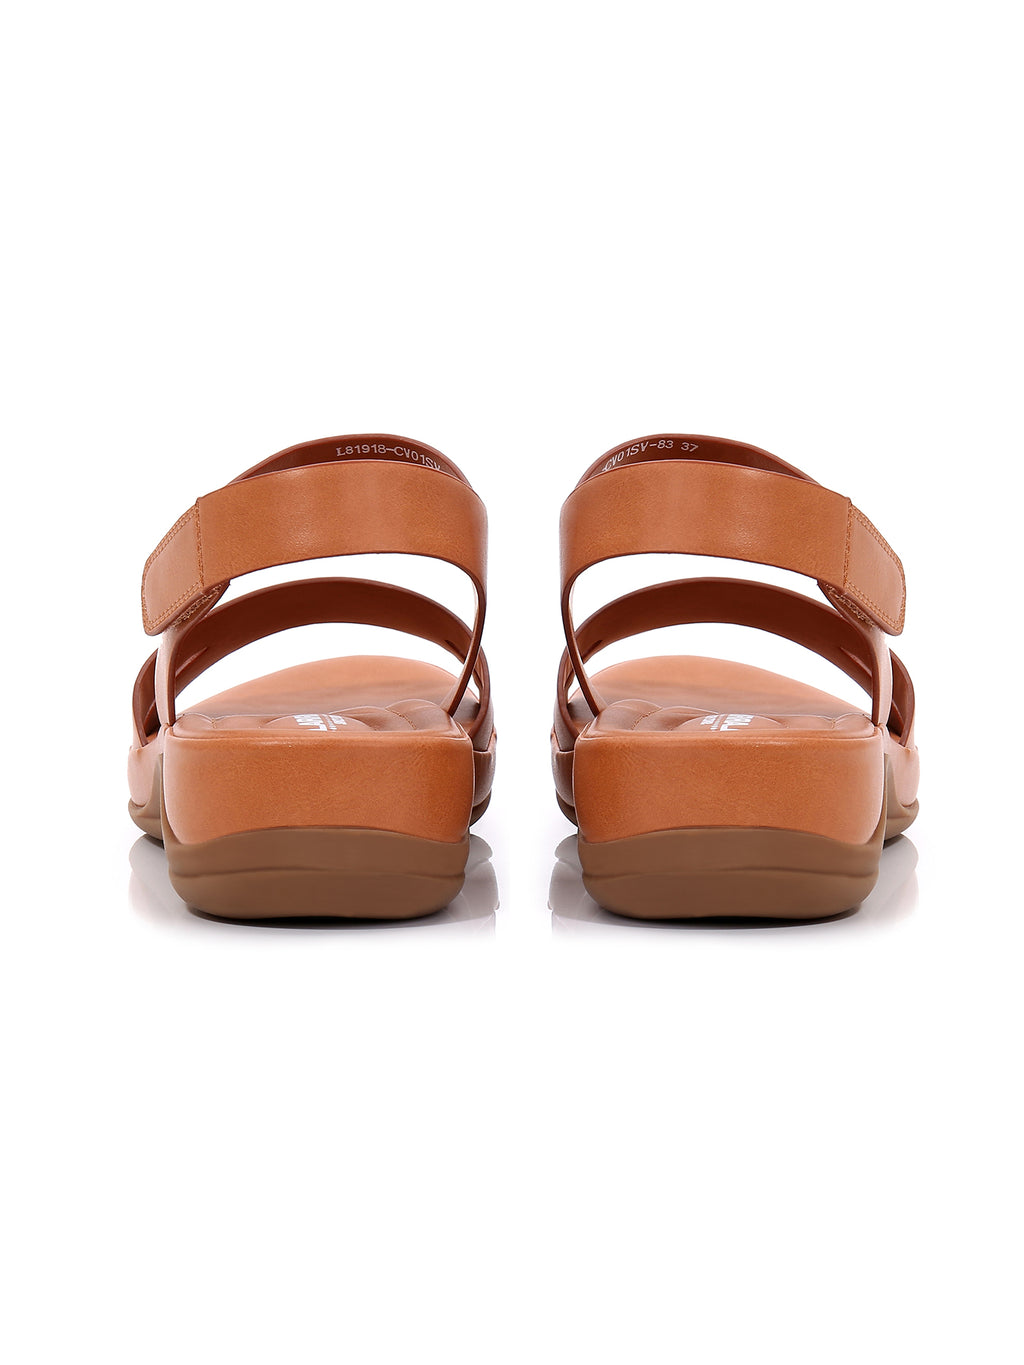 Larrie Camel OOTD Comfort Sporty Sandals